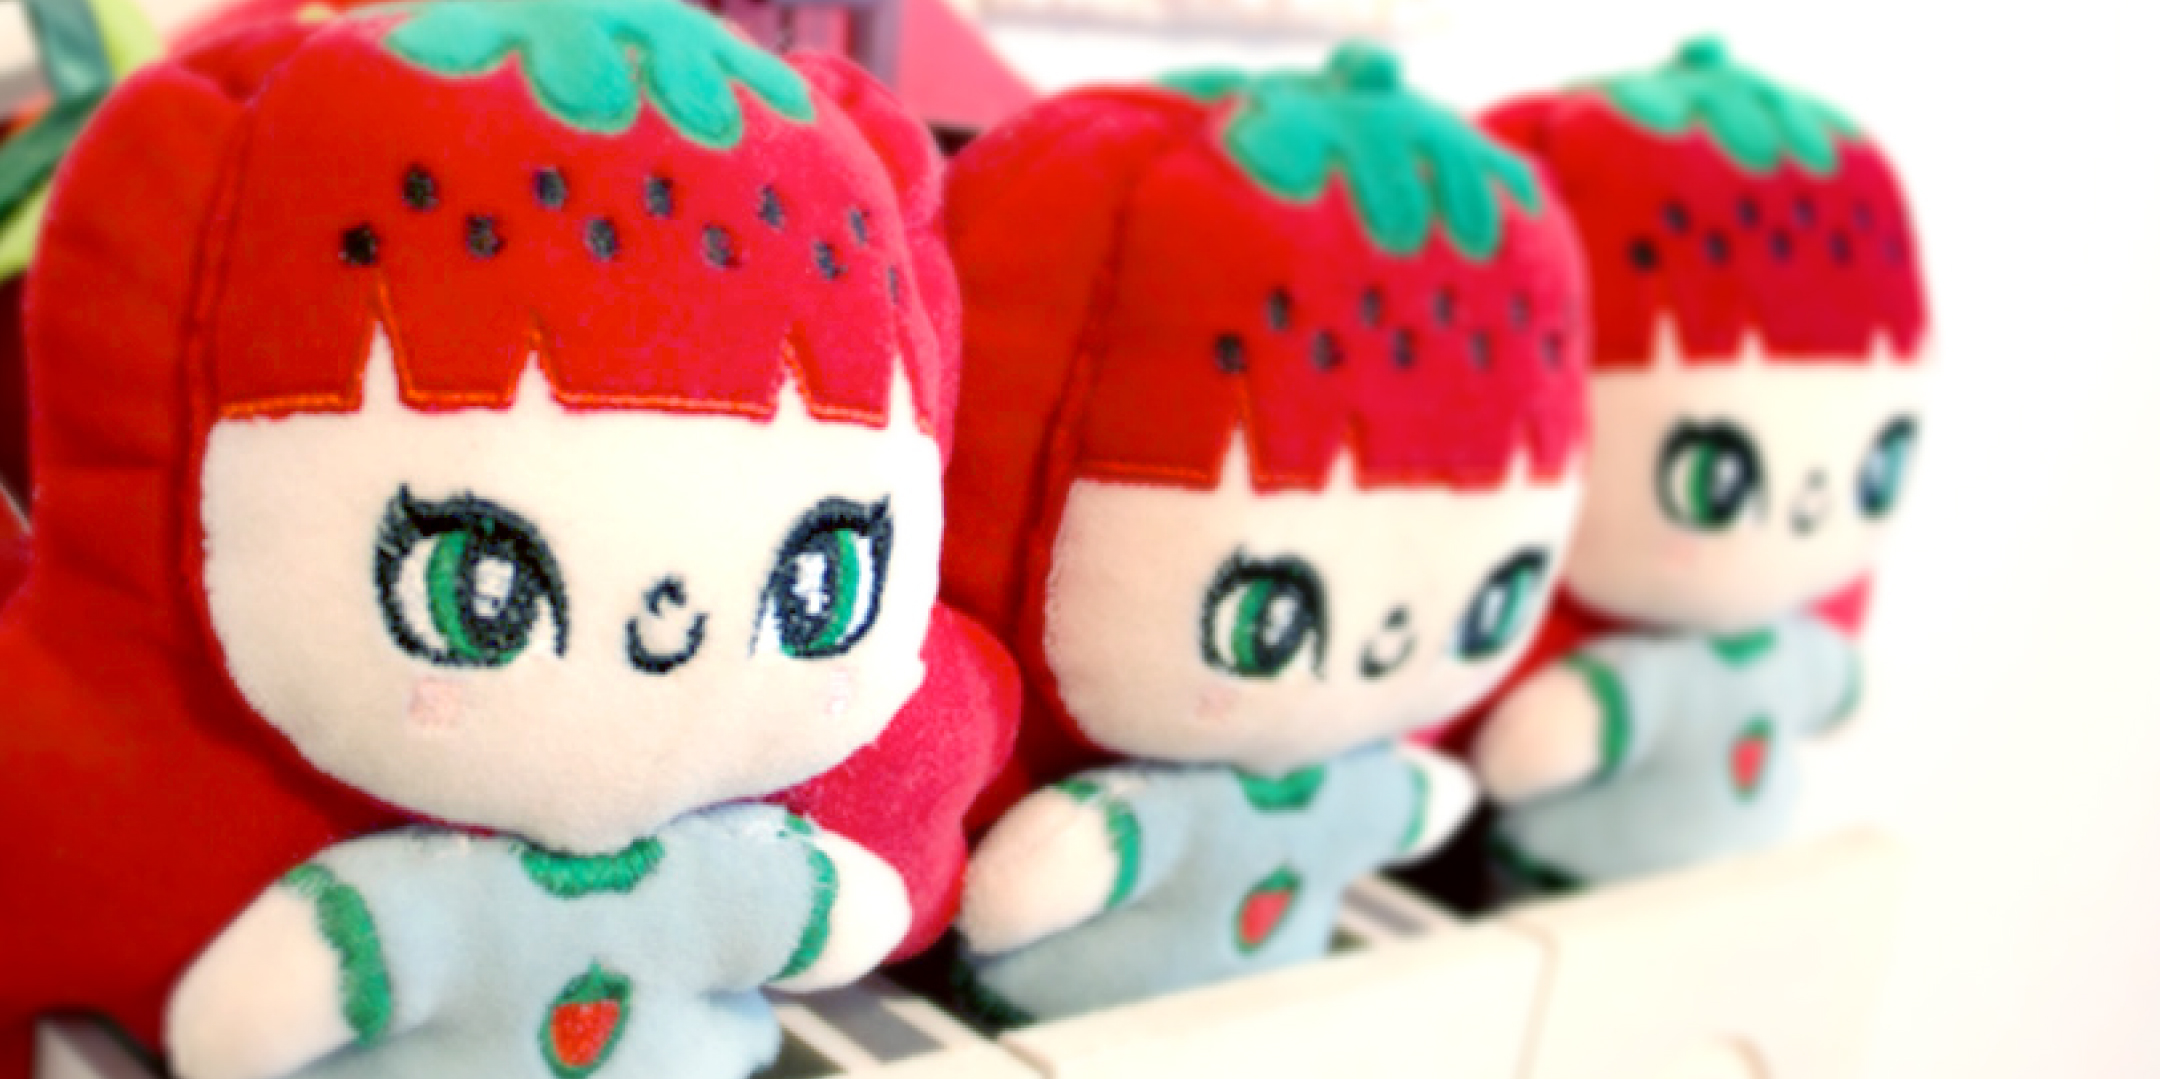 STRAWBERRY_STYLE_DOLL